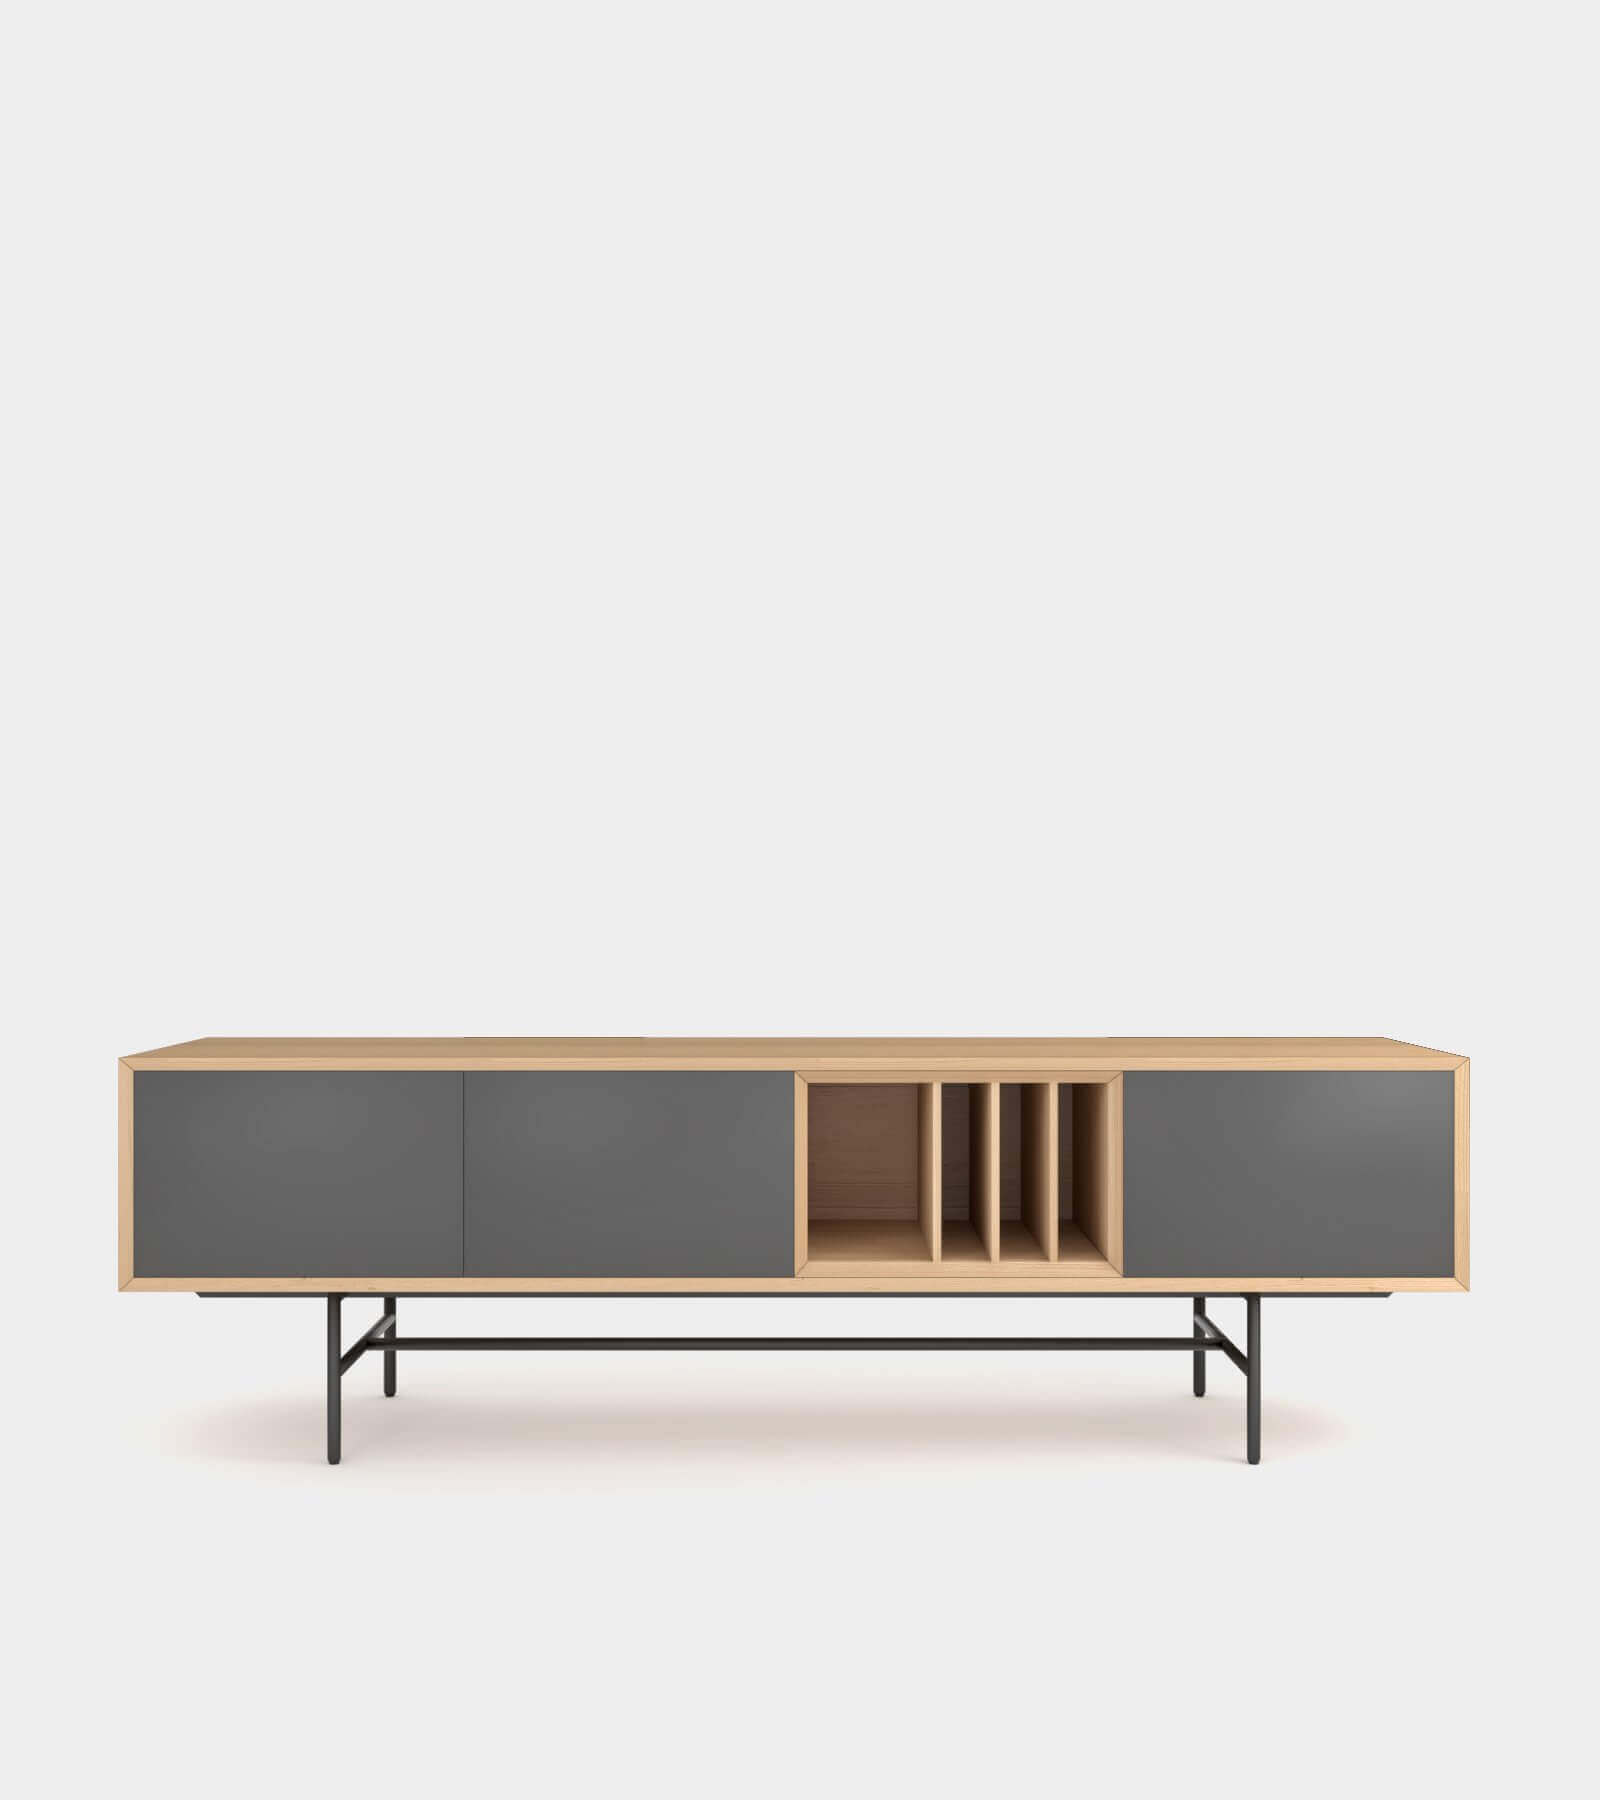 Clean and modern sideboard with wood frame-2 3D Model